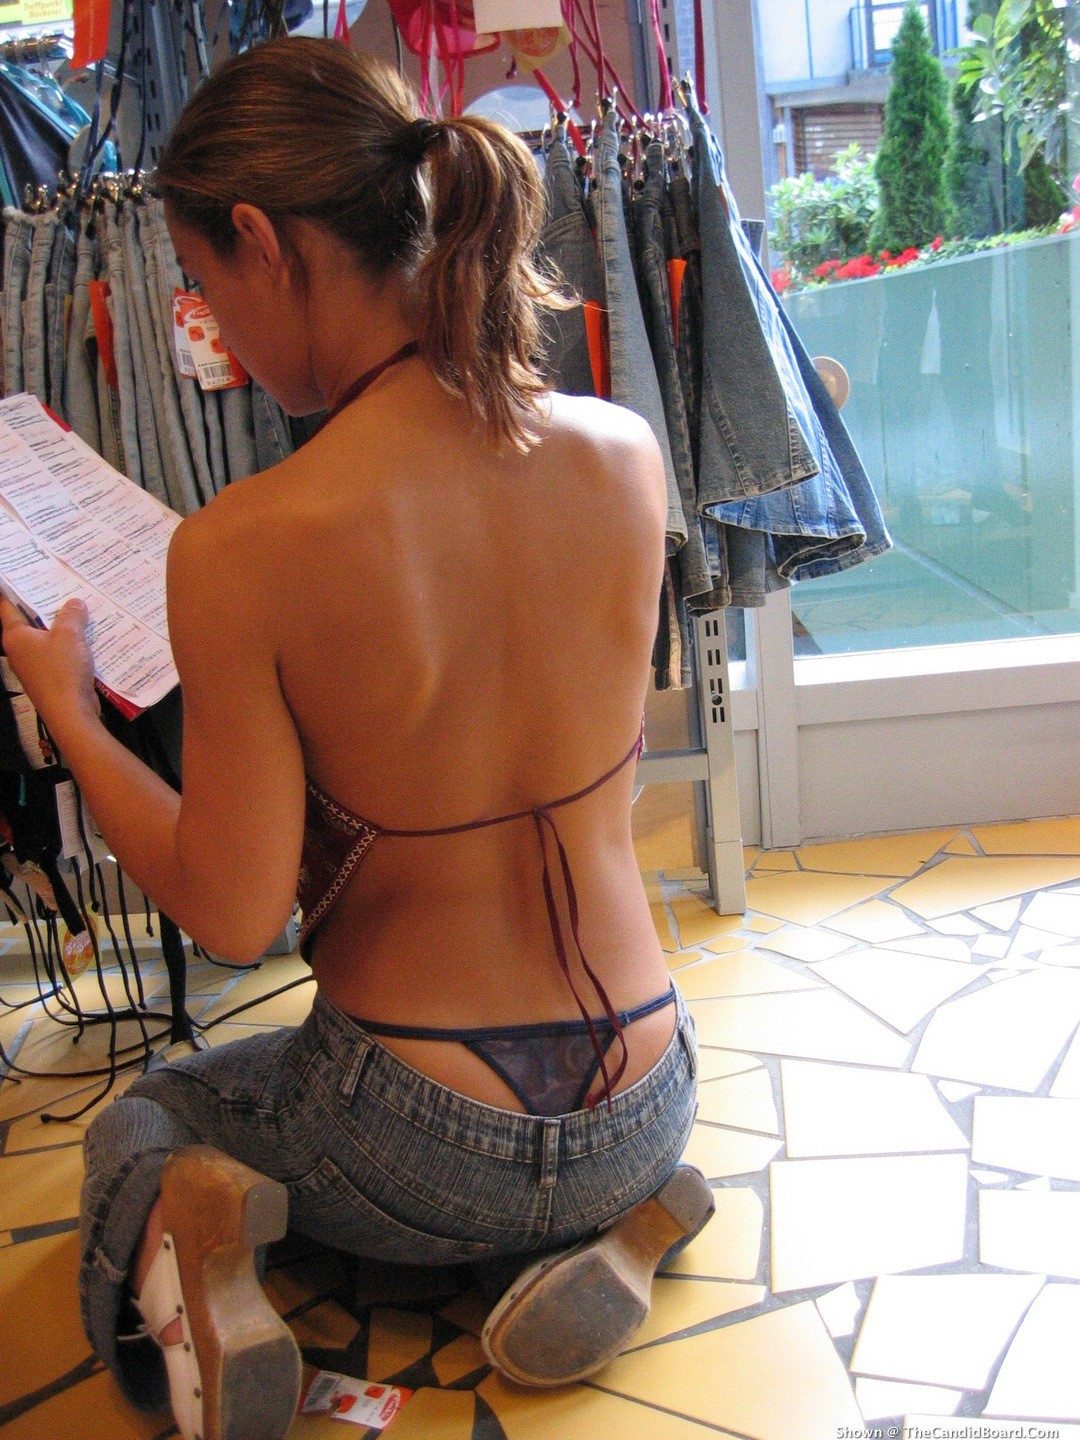 Sexy Thong Pics - Clothing Shop Clerk Checking The Inventory-3656